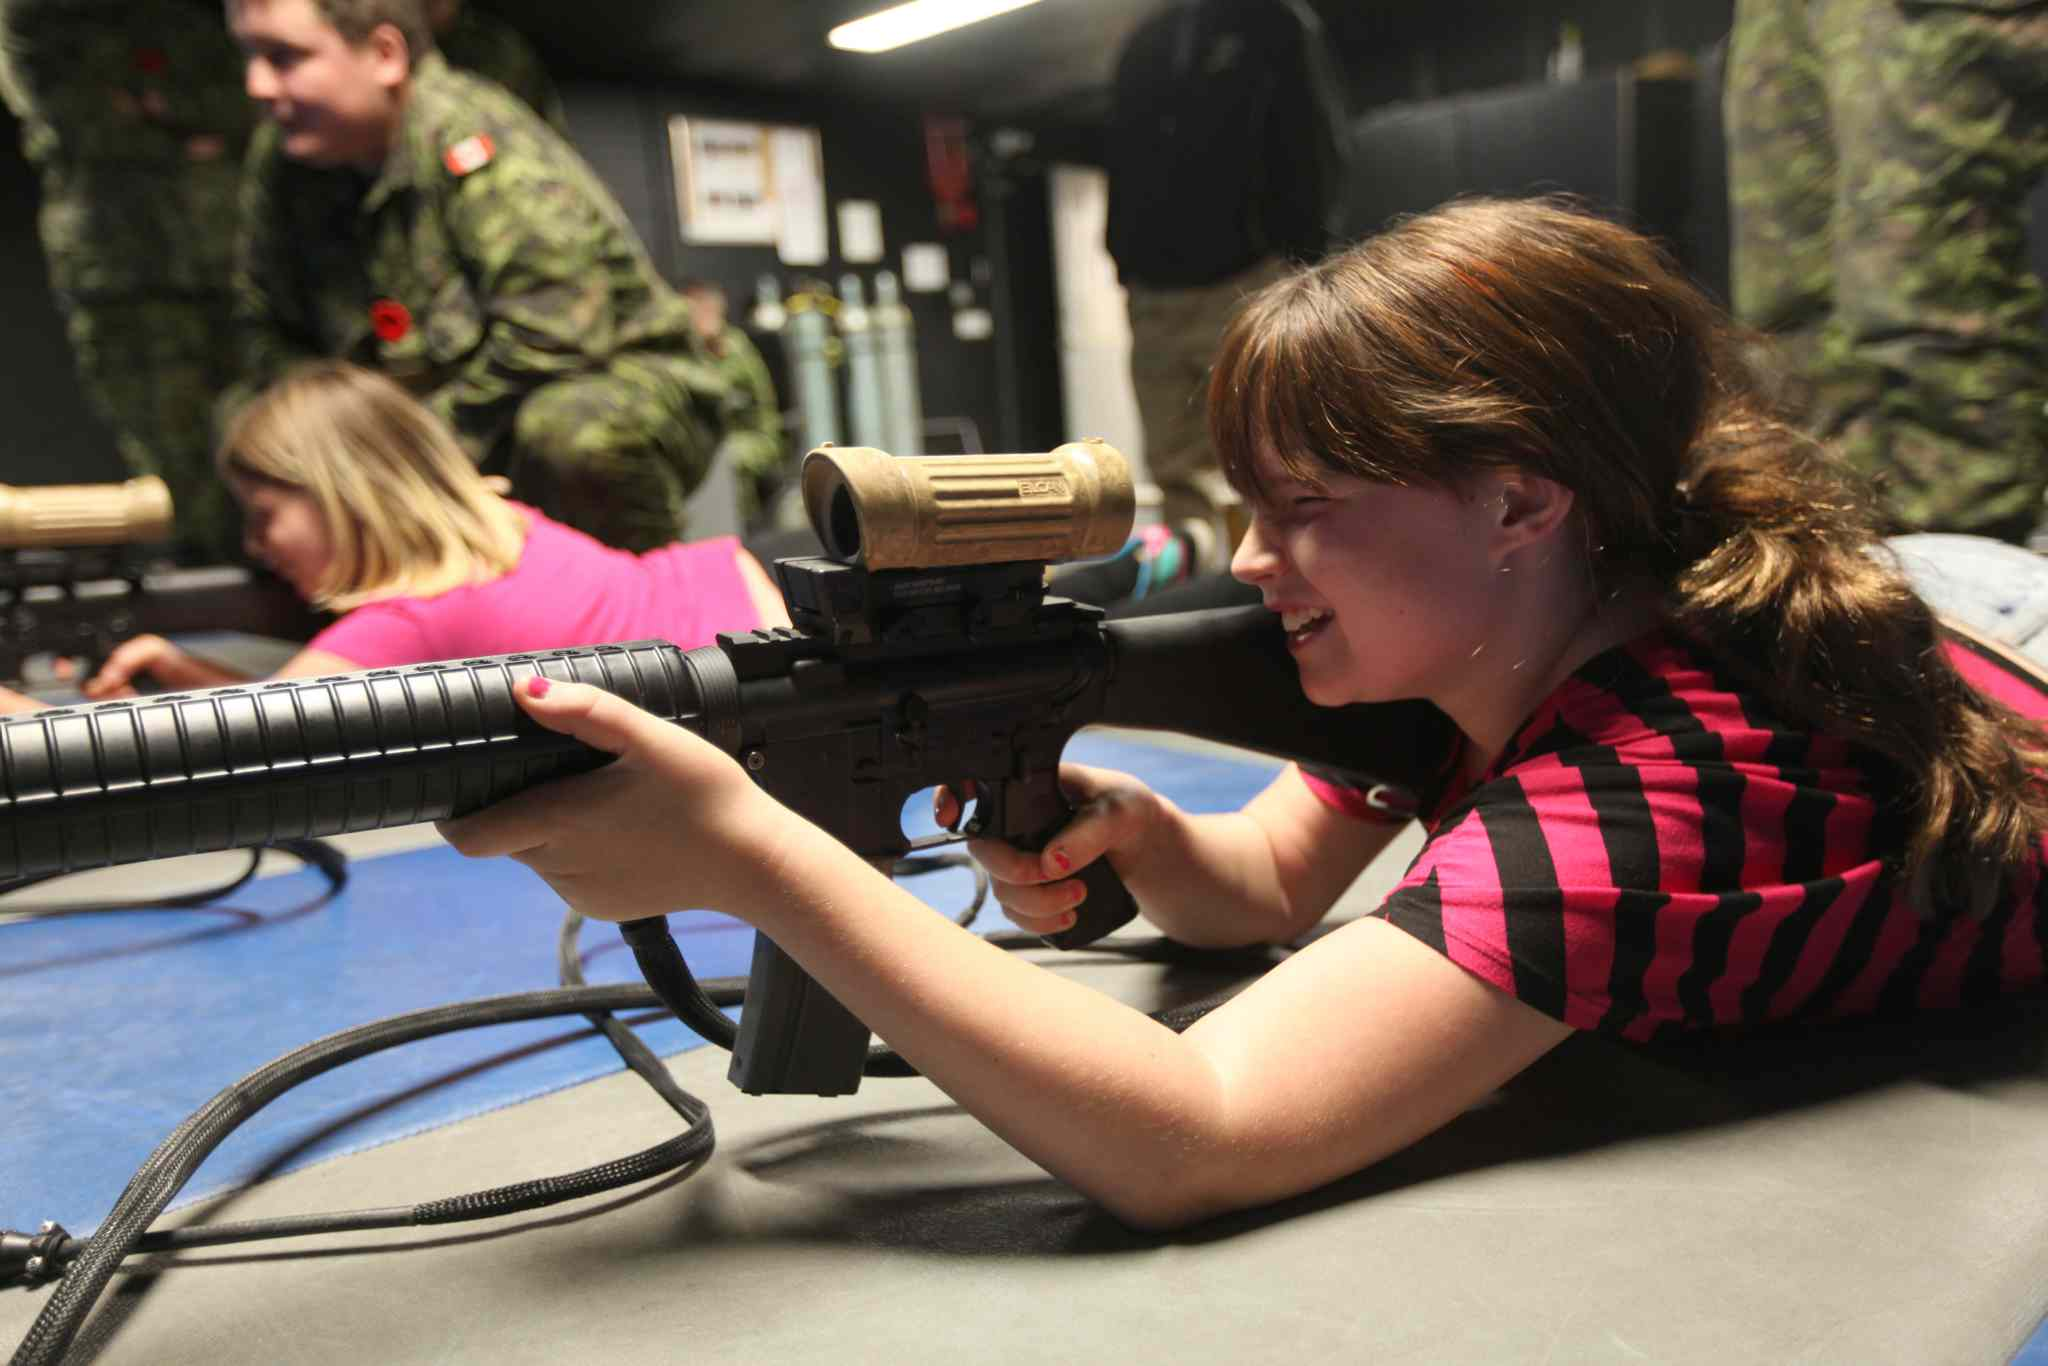 Megan Sawka (front) and her friend Darby Riguidel learn how to shoot an air gun on Saturday, with help from Captain Riguidel and other staff at Minto Armoury during their open house.